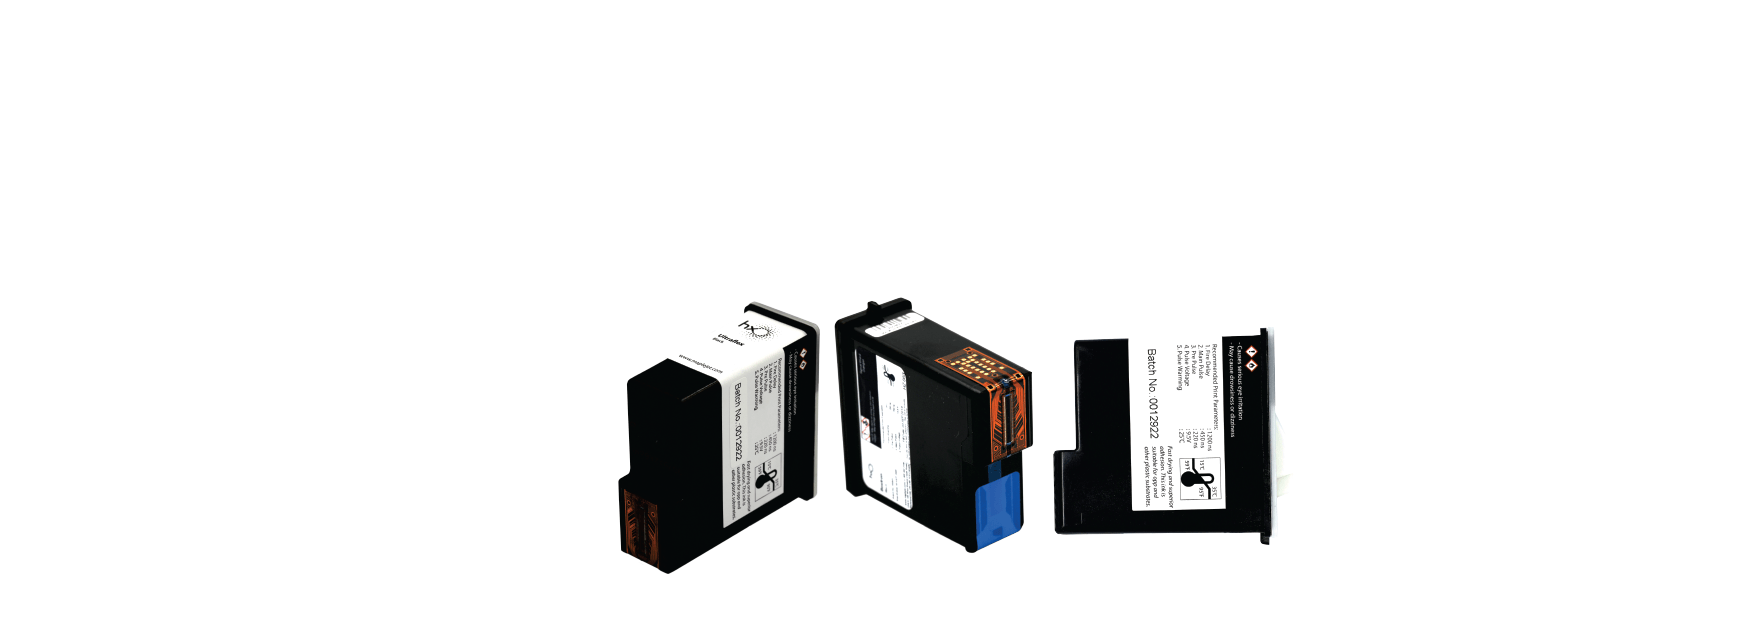 Hx Nitro Funai-based ink cartridges and their recommended applications